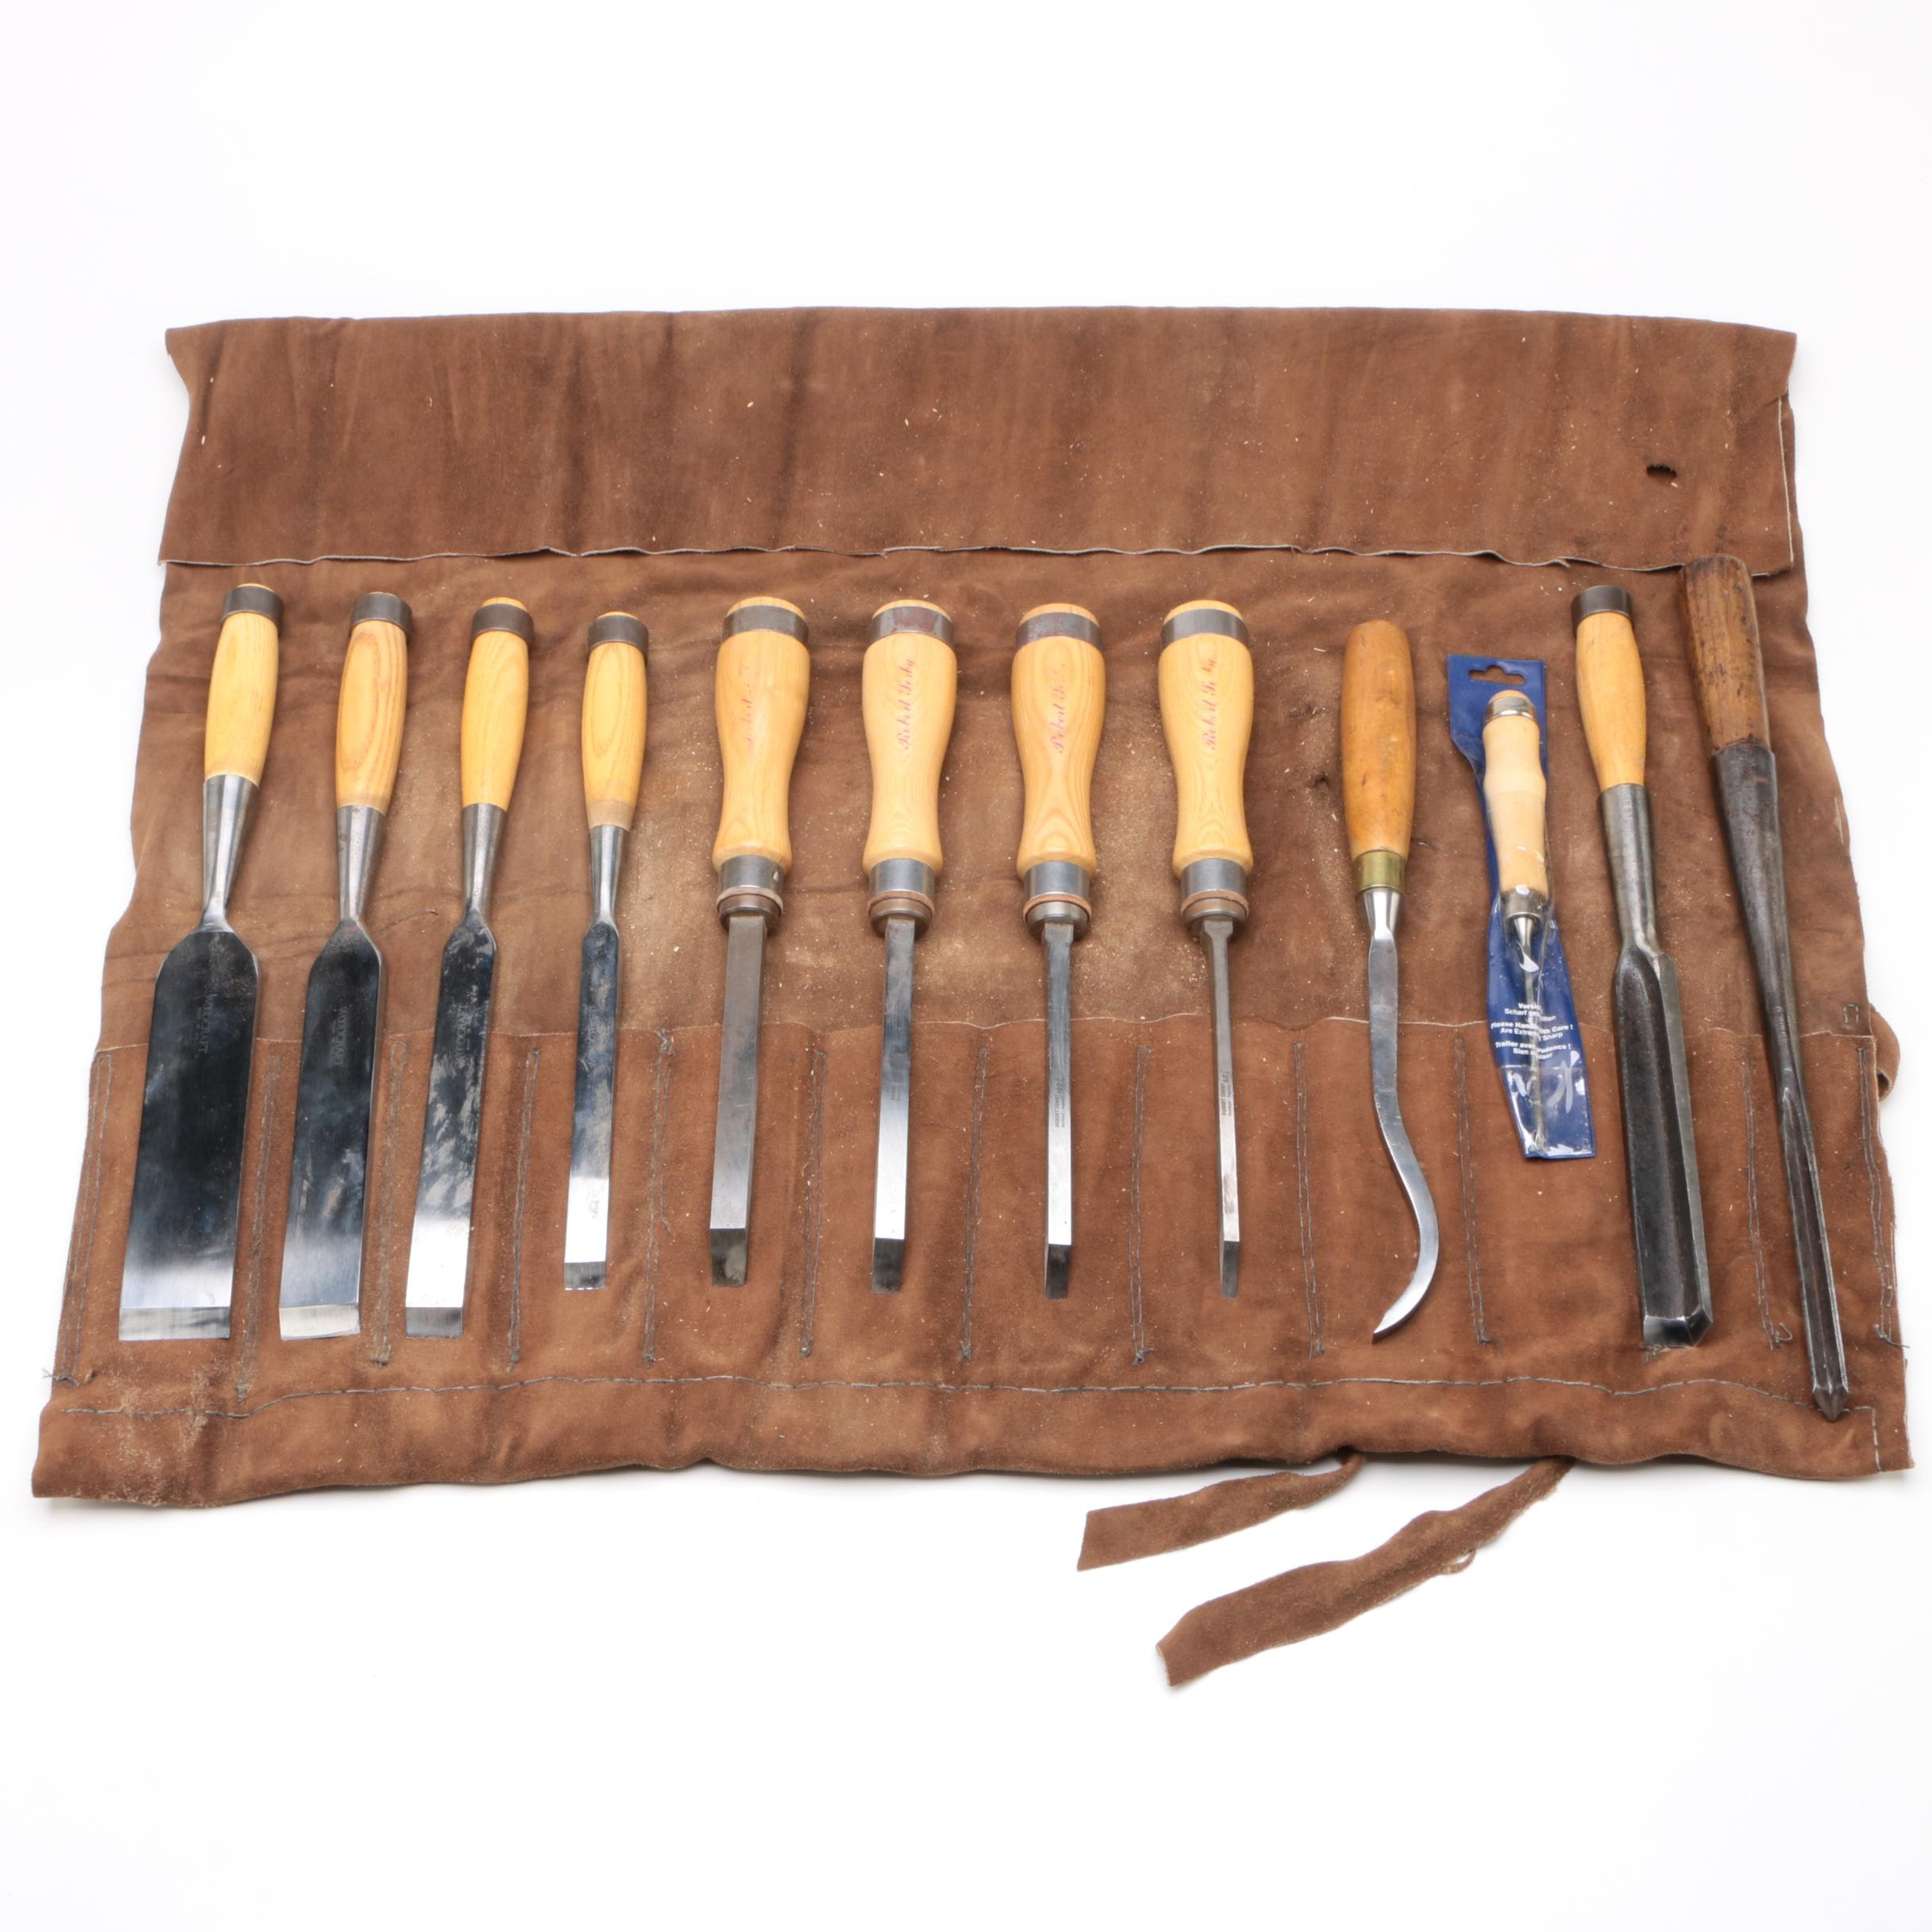 Sorby and Woodcraft Woodworking Tools and Others